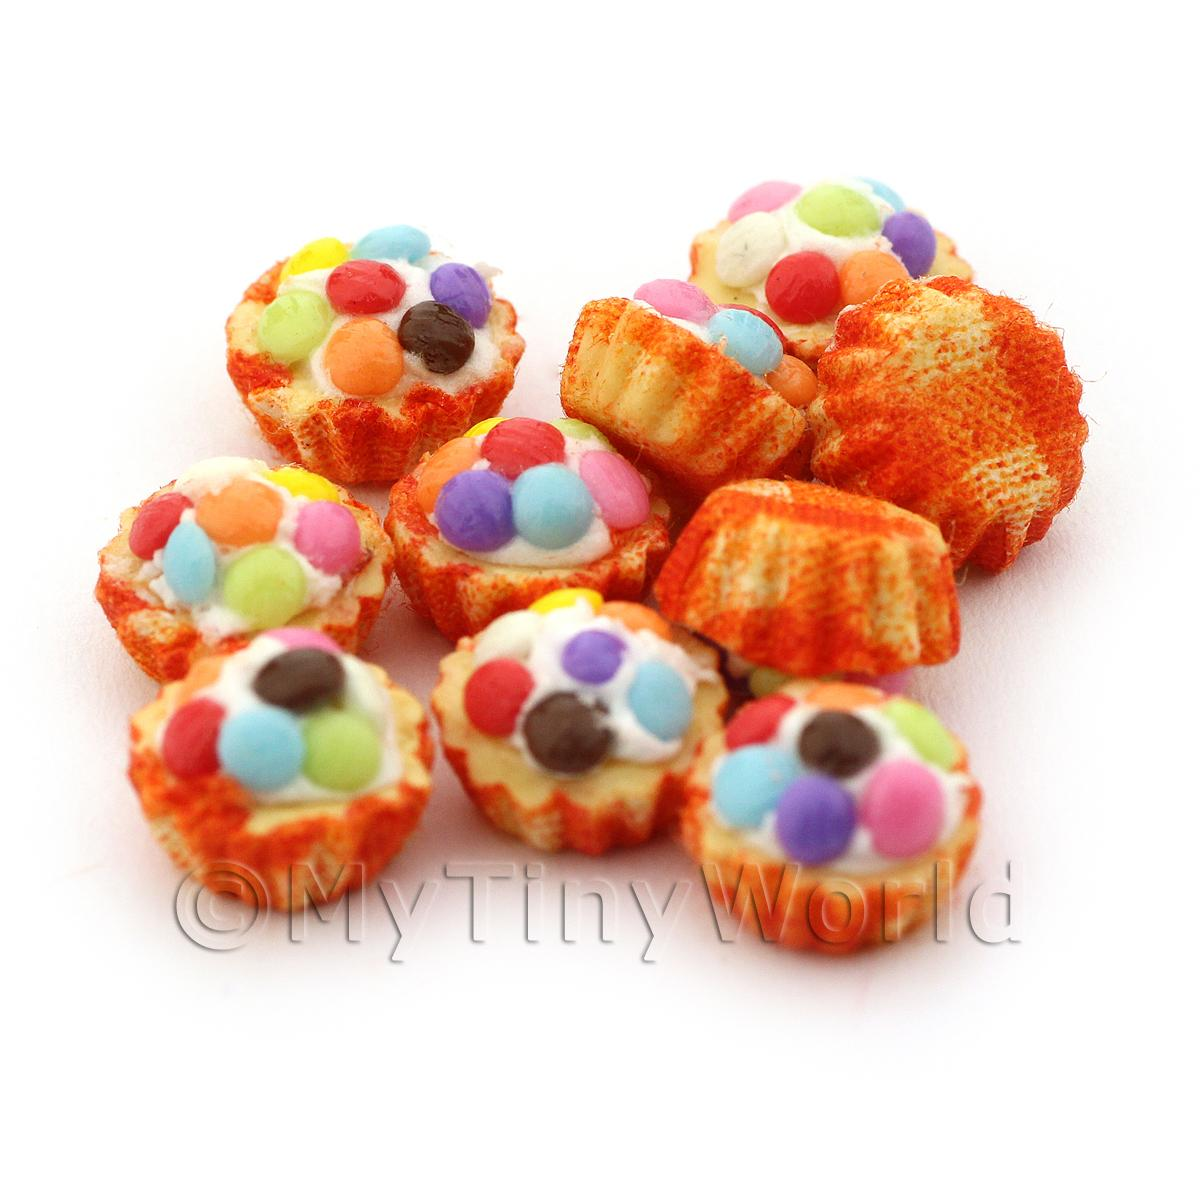 Miniature Smartie Topped Cupcake With A Orange Paper Cup